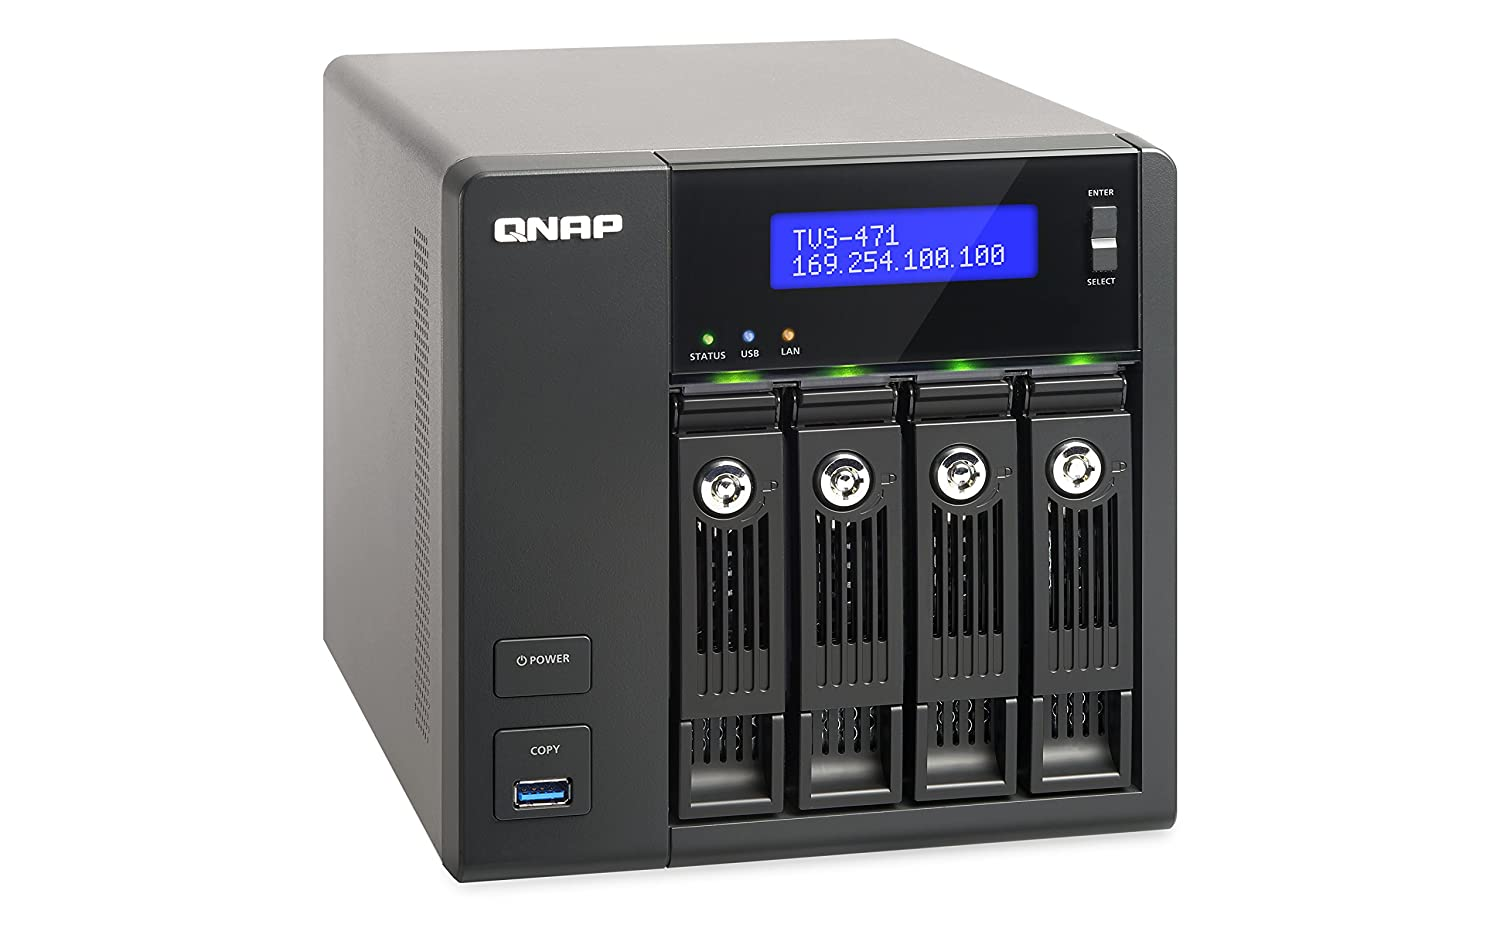 Amazon.com: QNAP TVS-471-i3-4G-US 4-Bay Intel Core i3 3.5GHz Dual Core, 4GB  RAM, 4LAN, 10G-ready (TVS-471-i3-4G-US): Computers & Accessories